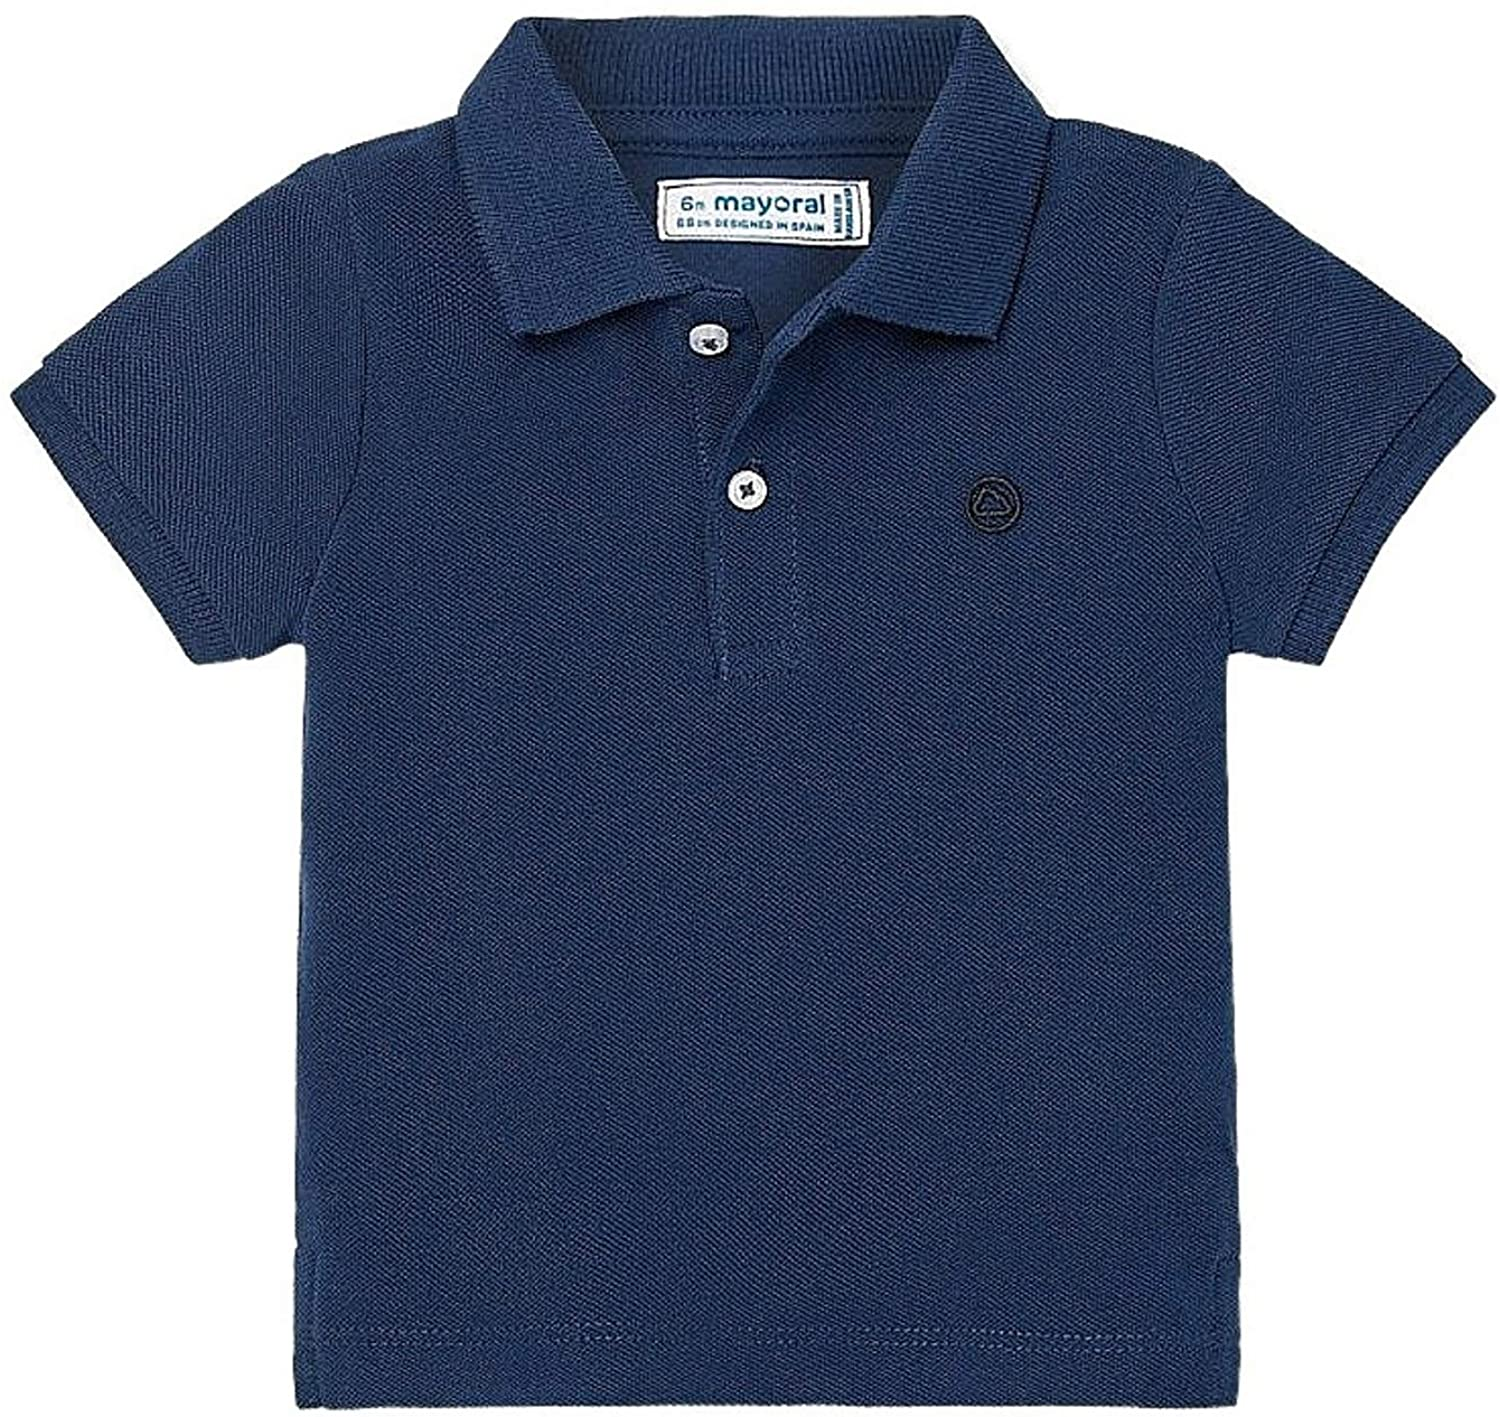 Mayoral - Basic s/s Polo for Baby-Boys - 0102, Sapphire